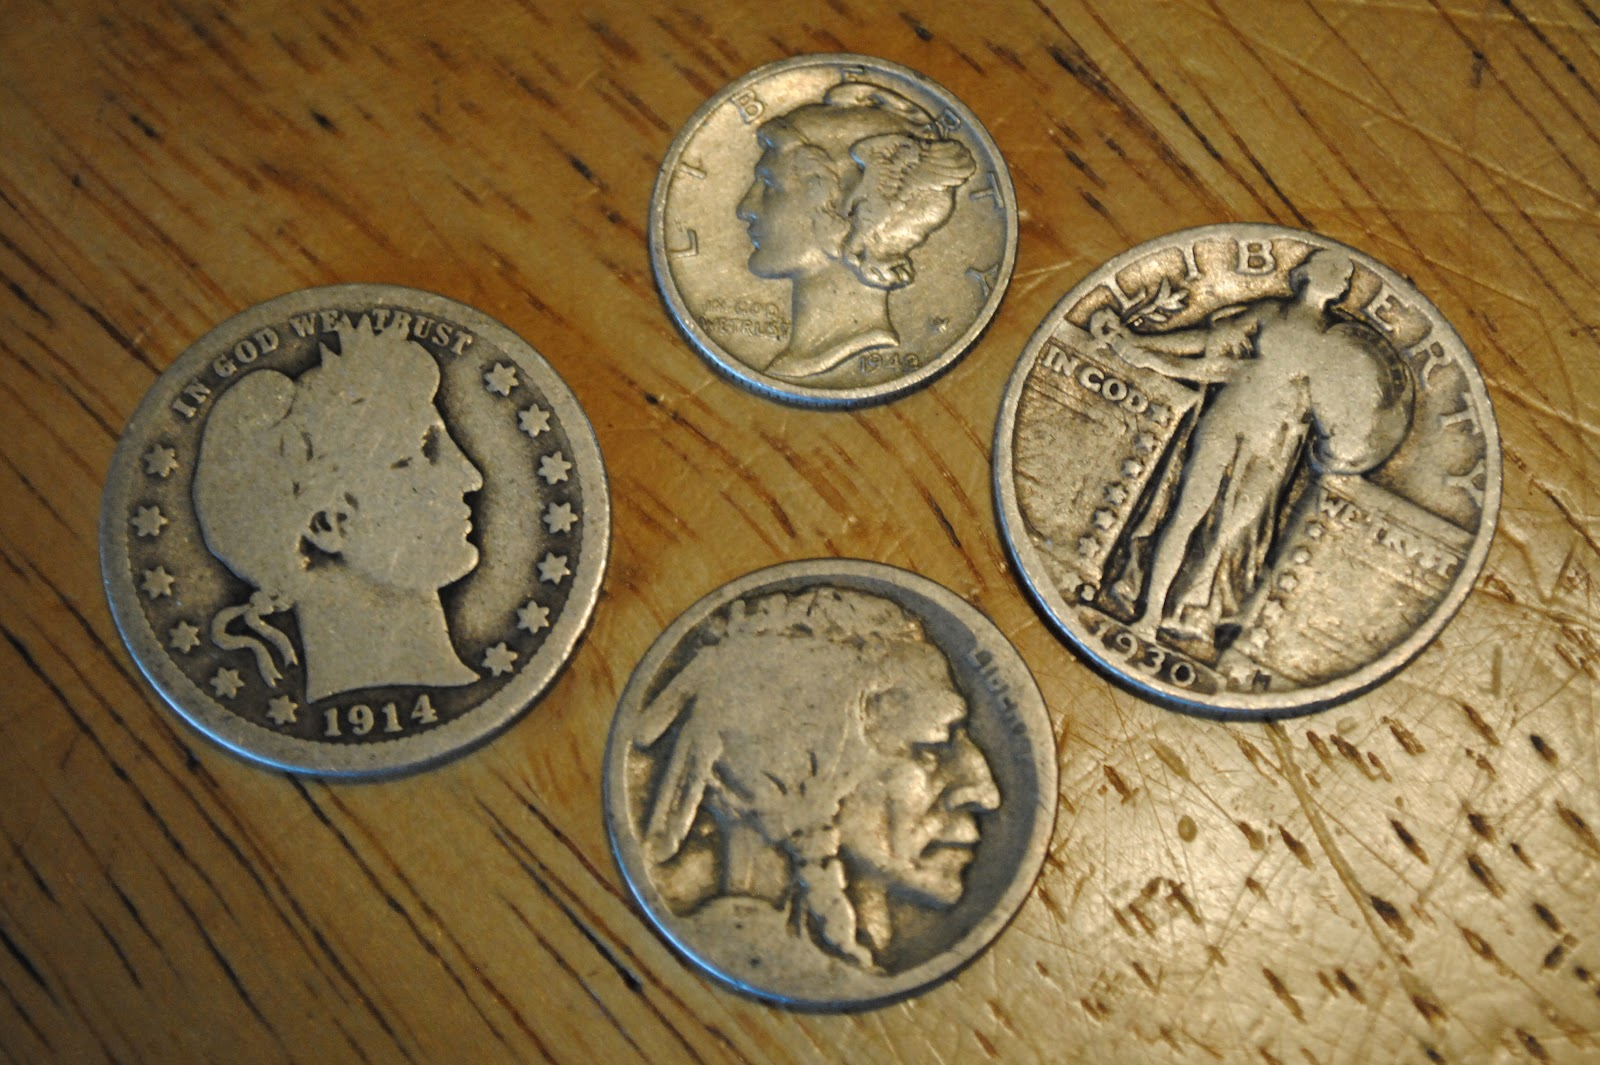 ... from coins especially when you come across a bag of old american coins